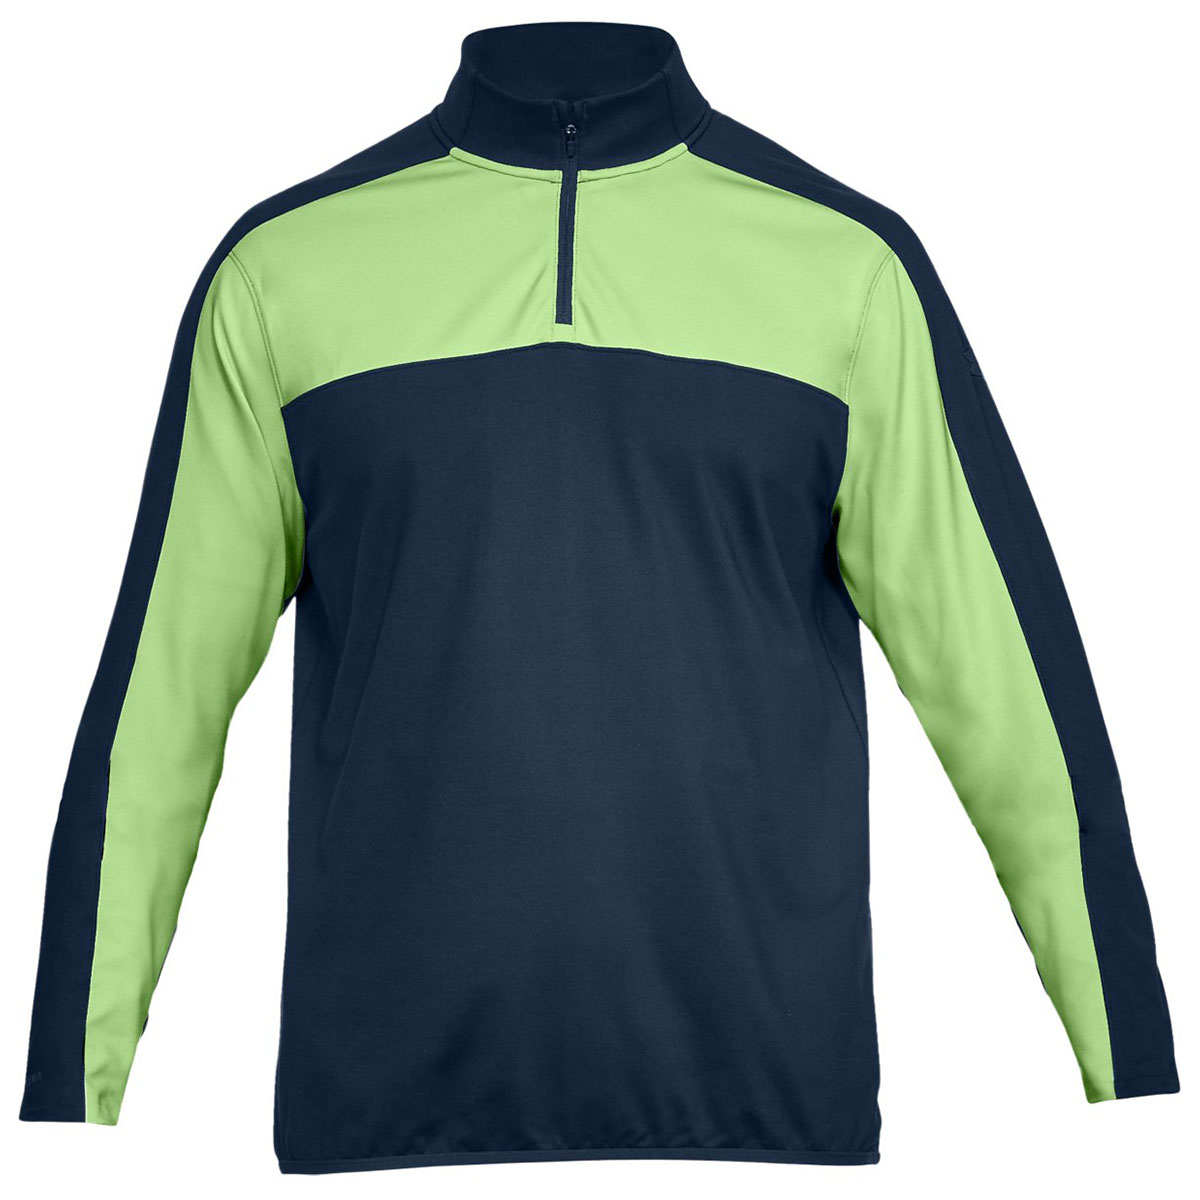 Under-Armour-Mens-Golf-1-4-Zip-Moisture-Control-Crestable-Sweater-45-OFF-RRP thumbnail 4